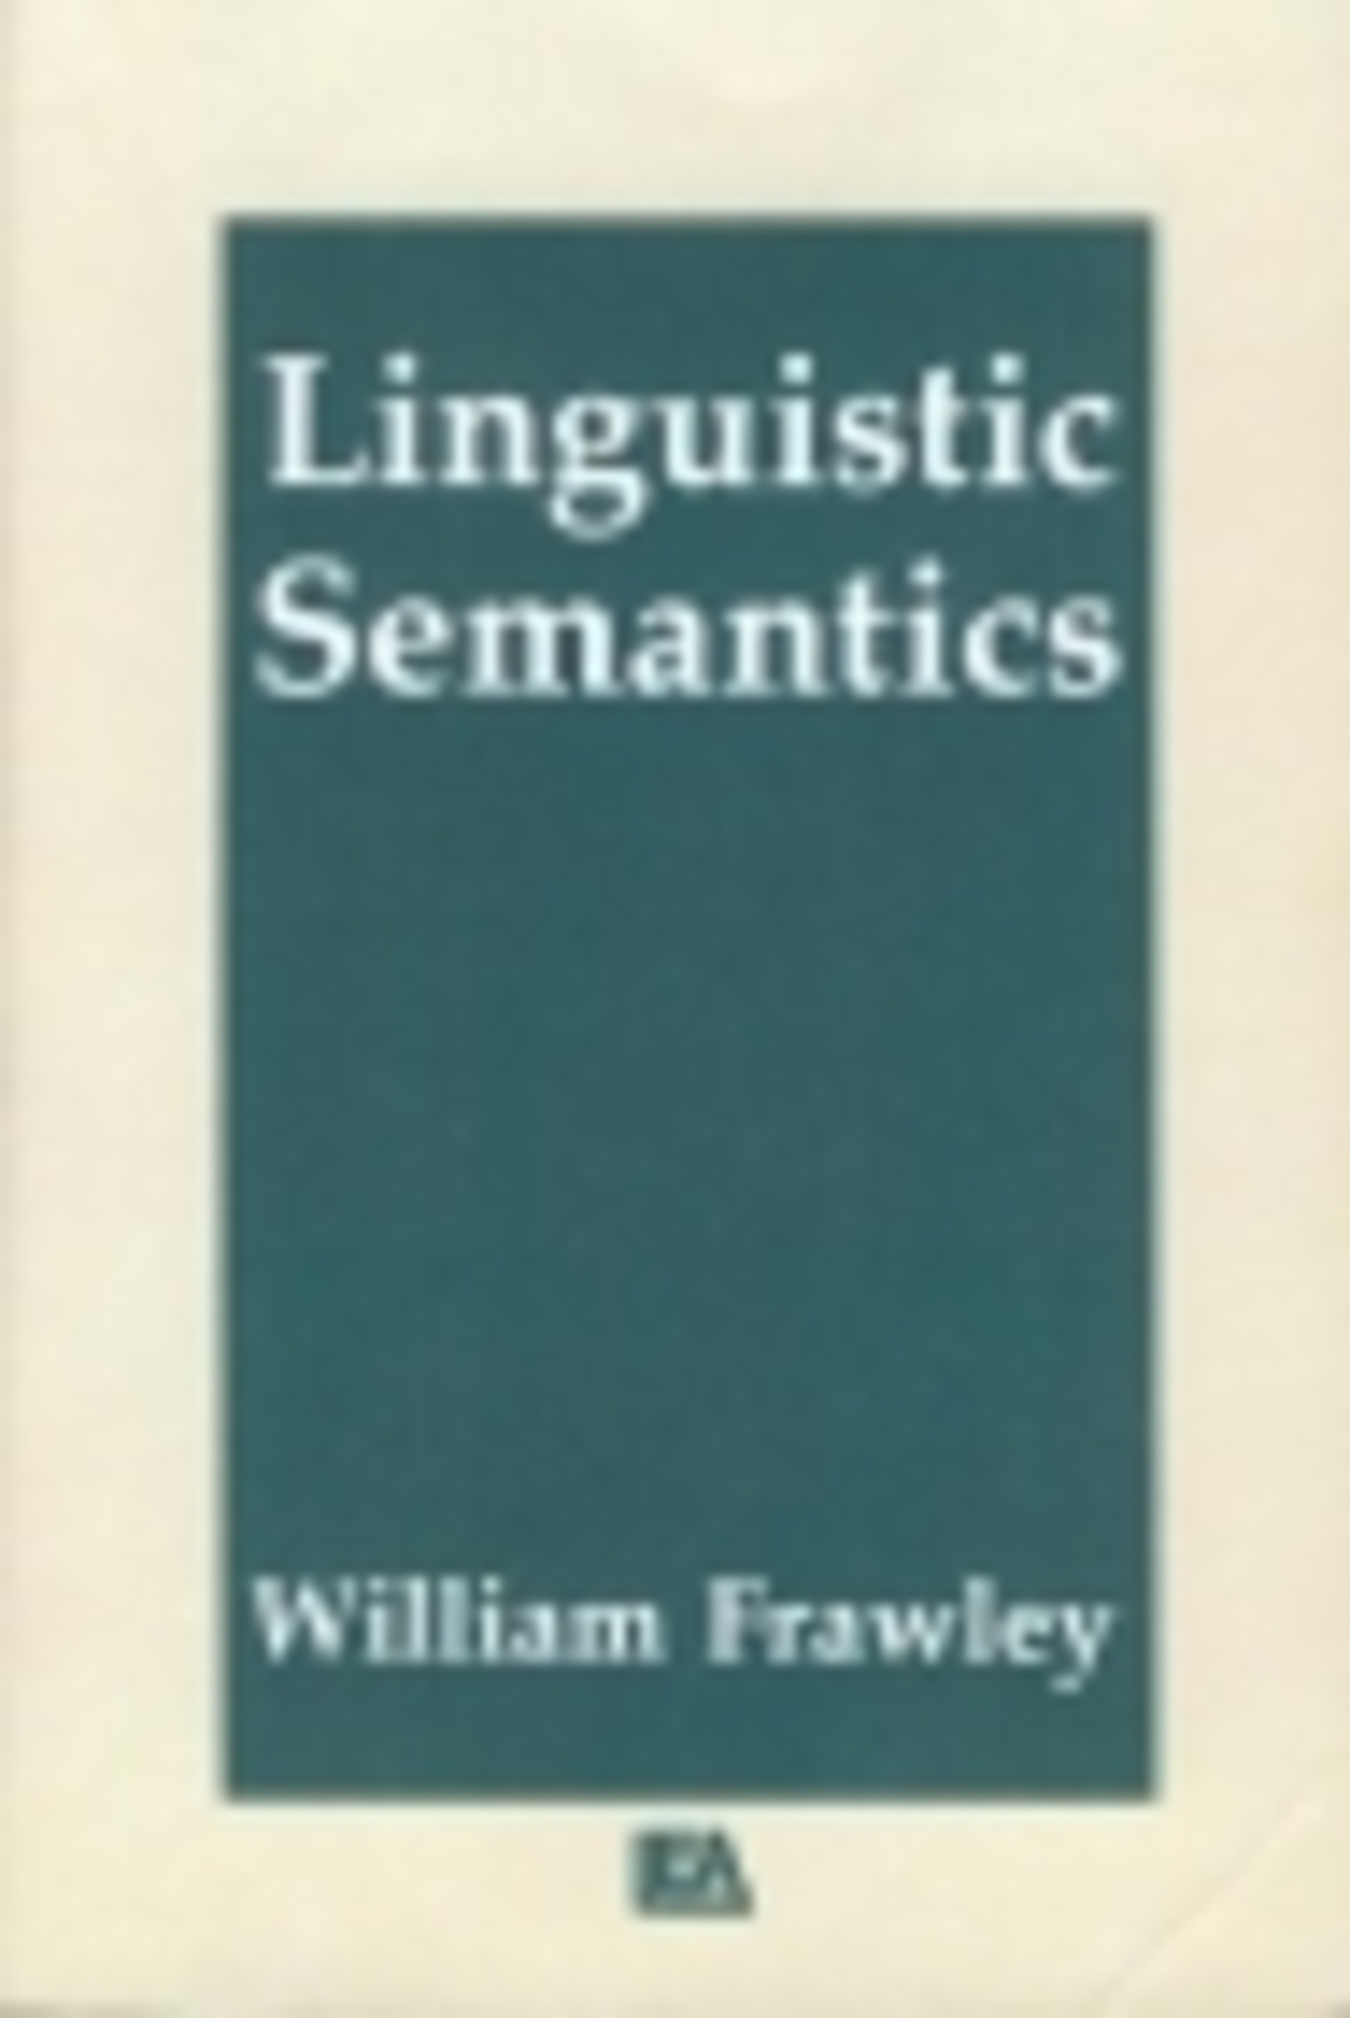 lingustic semantics The first quarter focuses primarily on pragmatics: those aspects of meaning that arise from the way that speakers put language to use, rather than through the formal properties of the linguistic system itself, which is the domain of semantics.